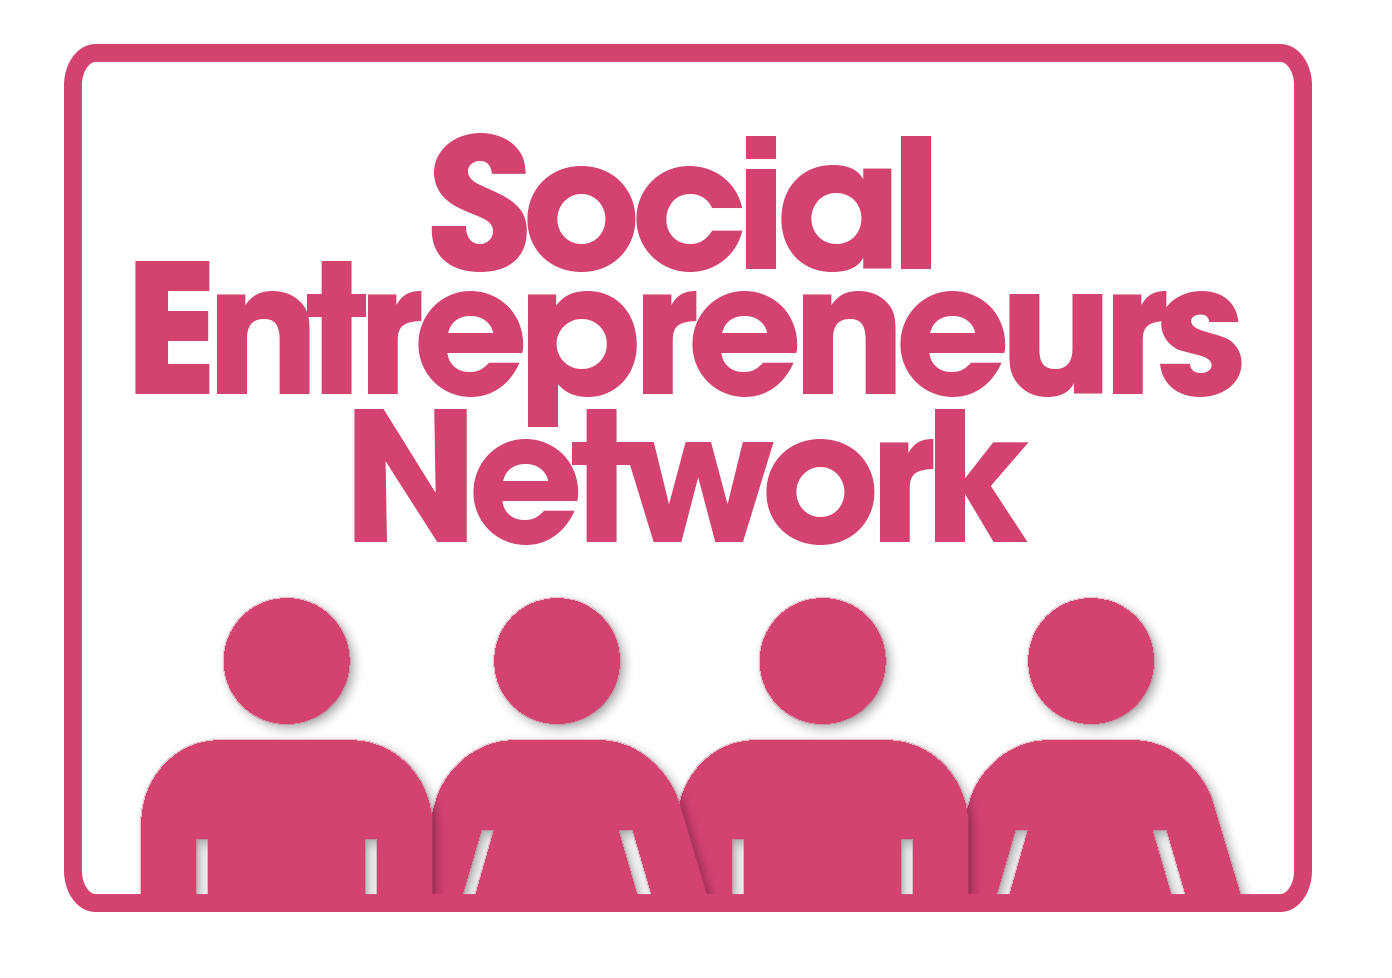 entrepreneurs of social networking Social venture network connects, supports and inspires business leaders and social entrepreneurs in expanding practices that build a just and sustainable economy.